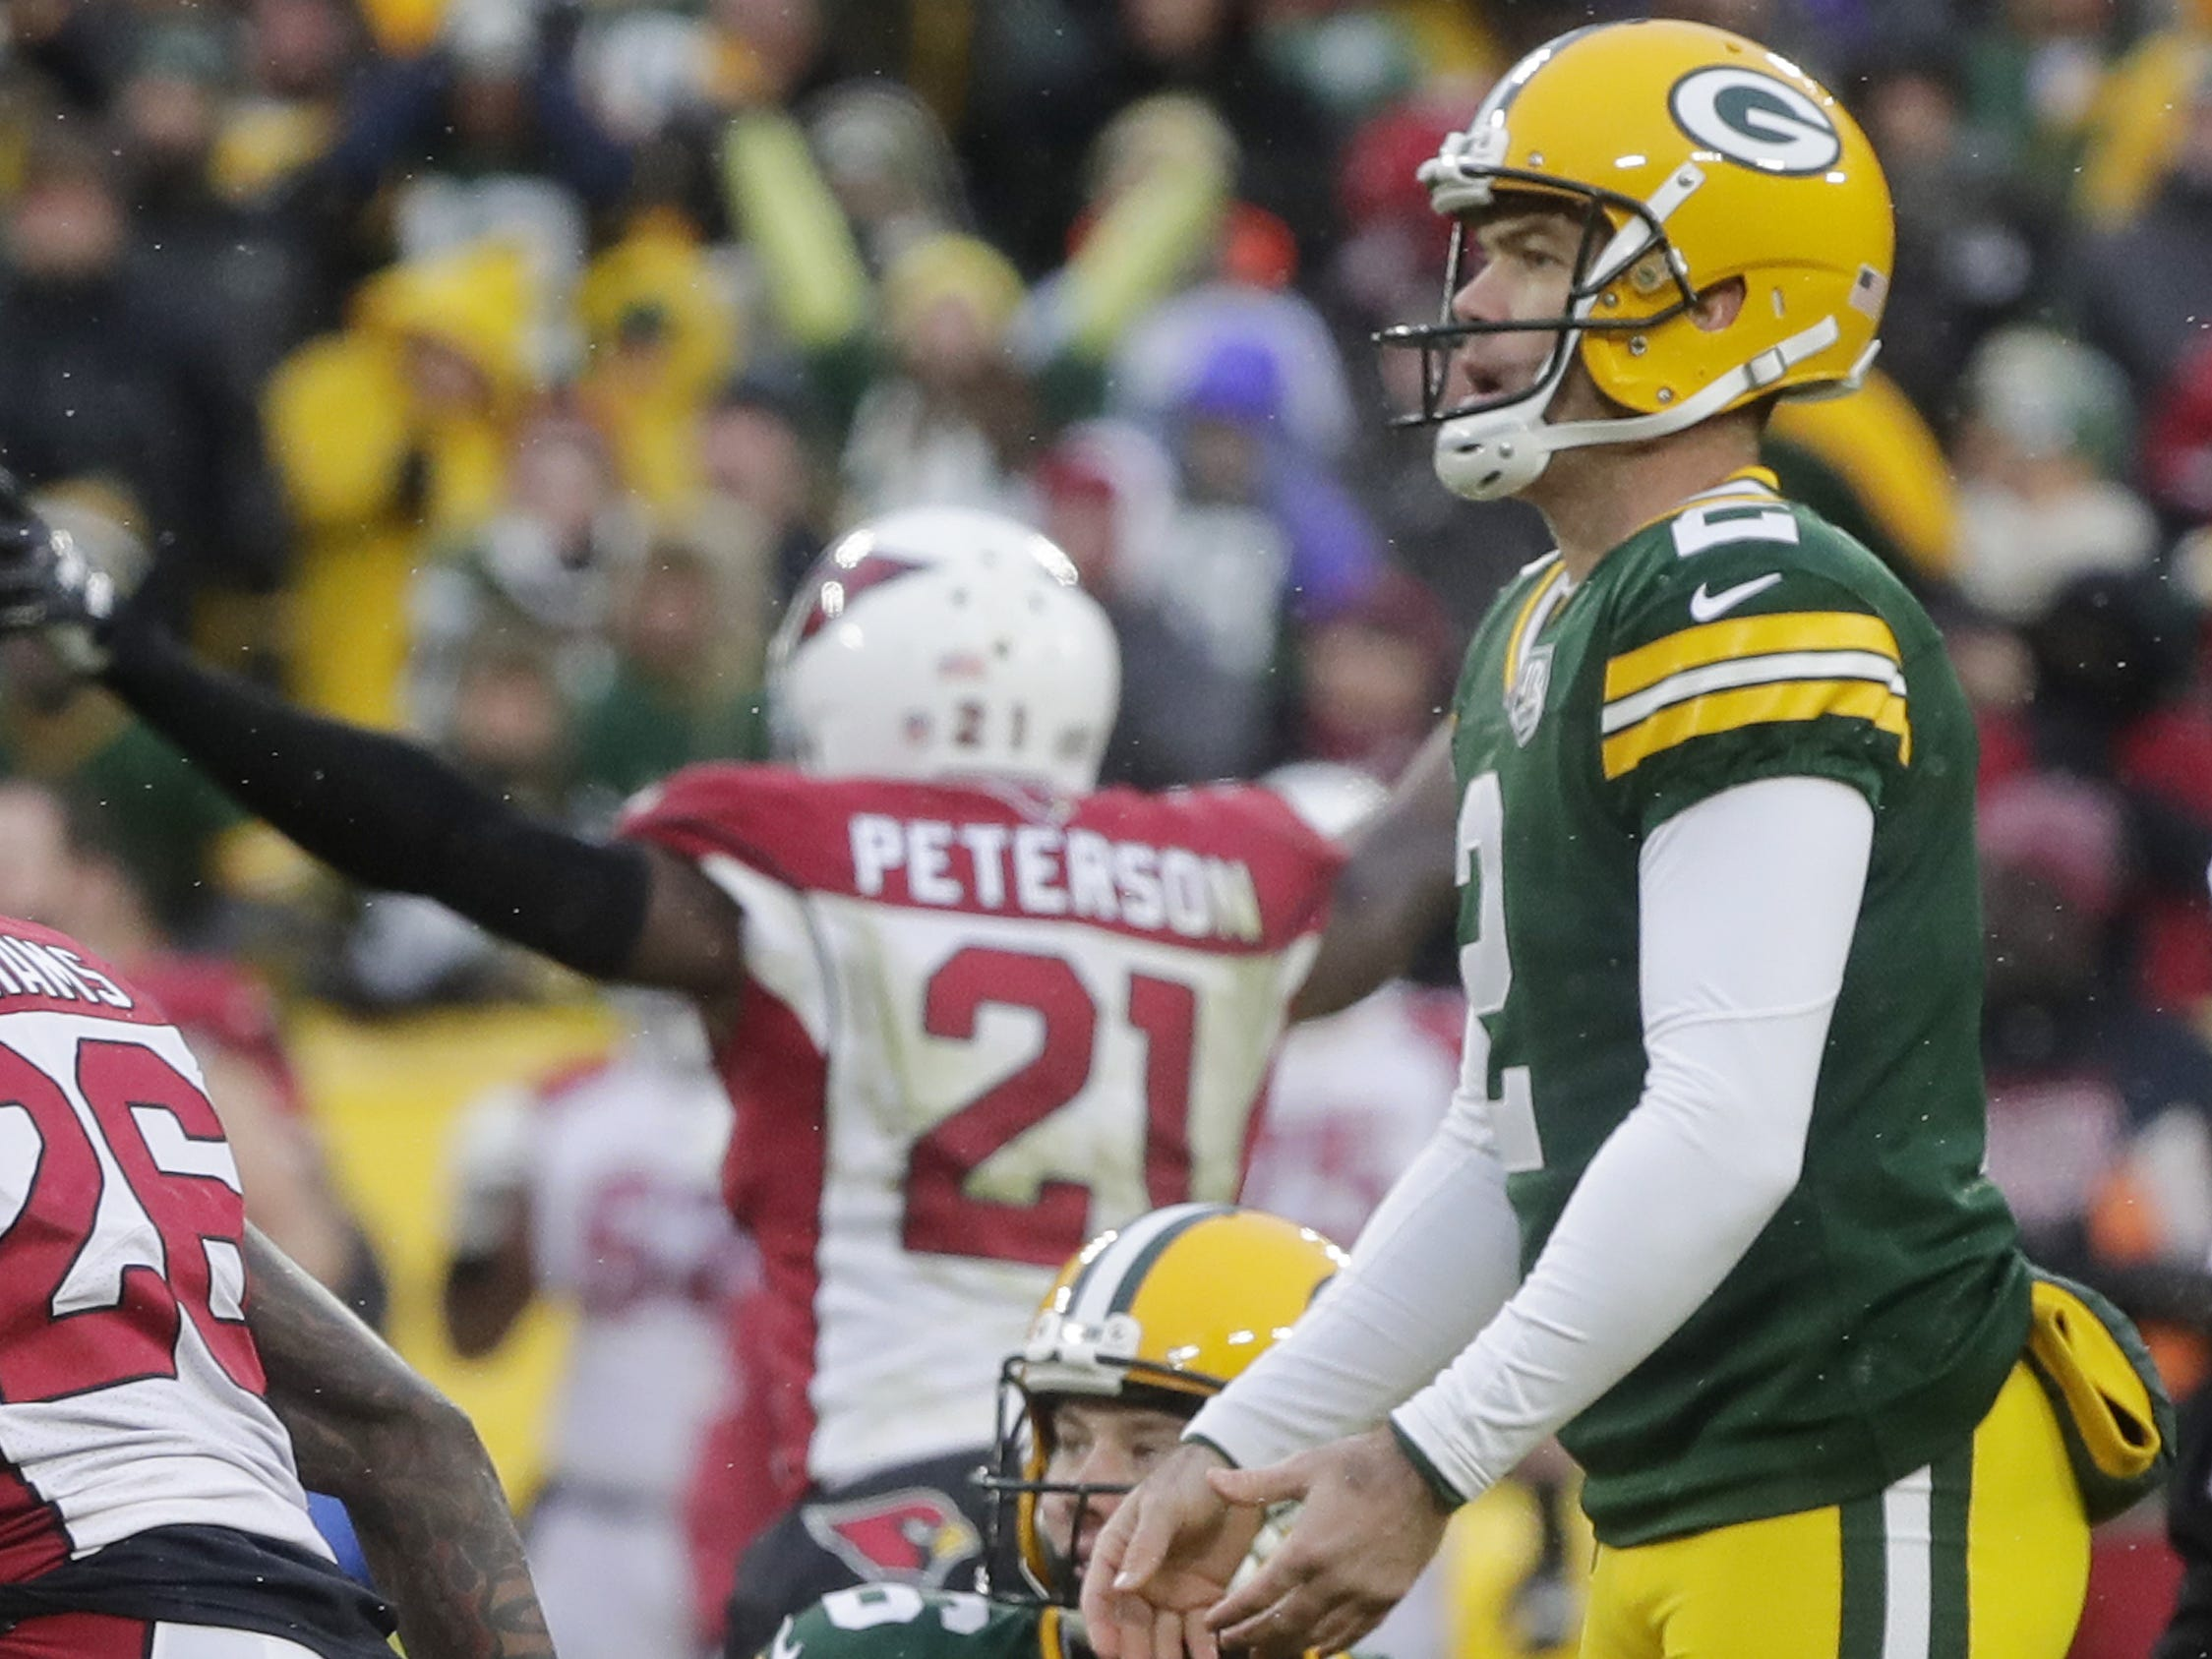 Green Bay Packers kicker Mason Crosby (2) reacts after missing a field goal as time-expired against the Arizona Cardinals at Lambeau Field on Sunday, December 2, 2018 in Green Bay, Wis.